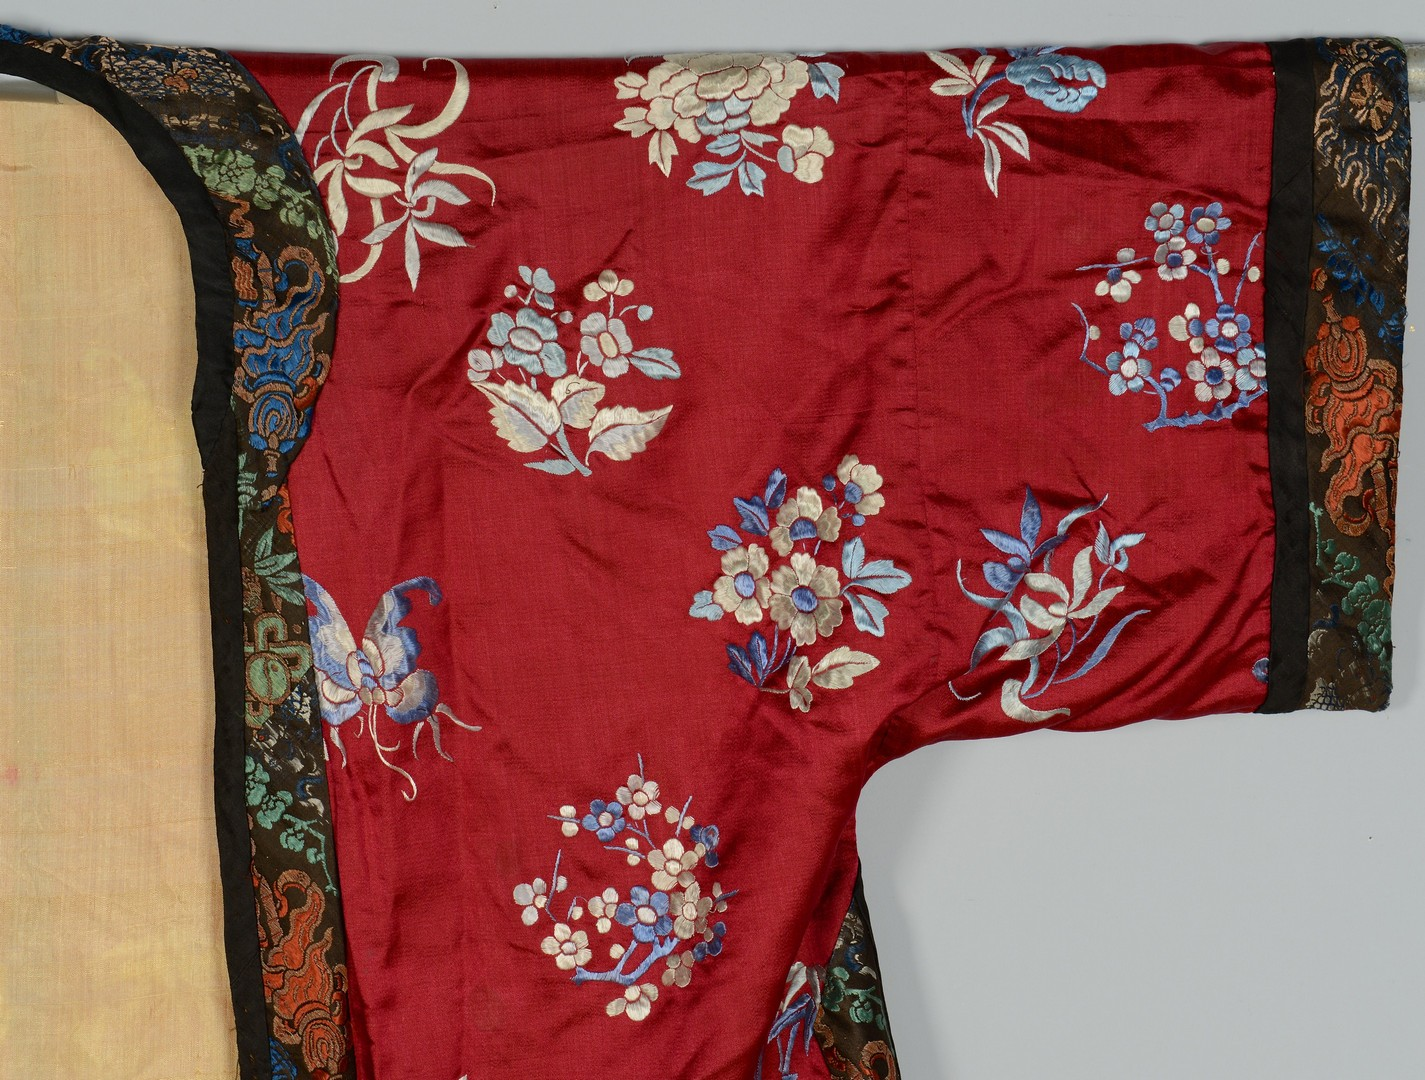 Lot 3383241: Japanese Ladies Robe